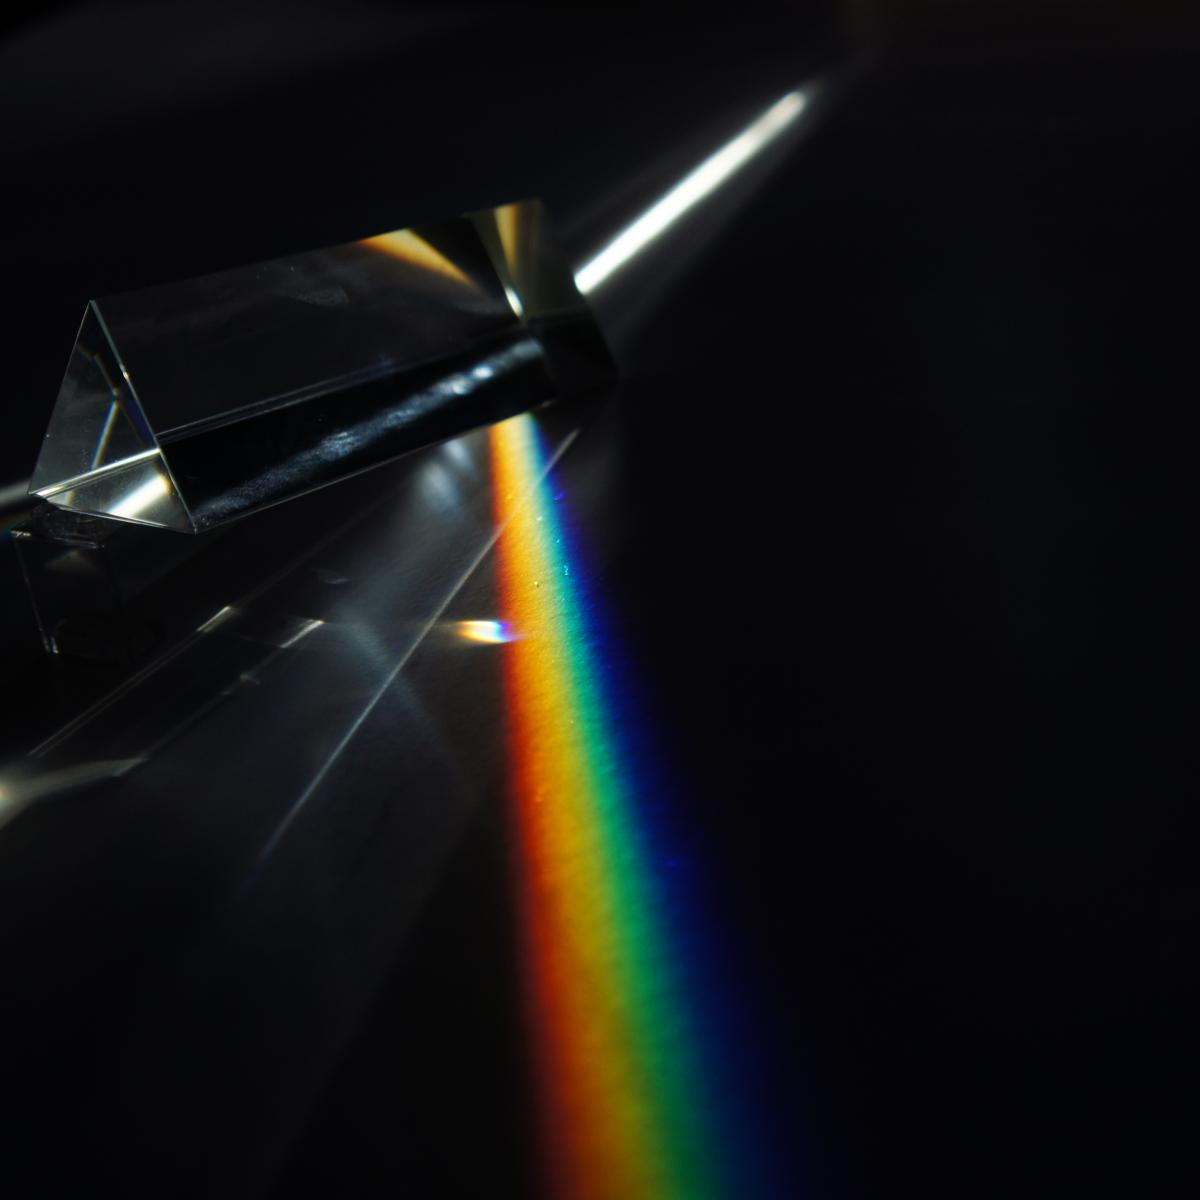 Prism Flat Rainbow from Wikimedia Commons